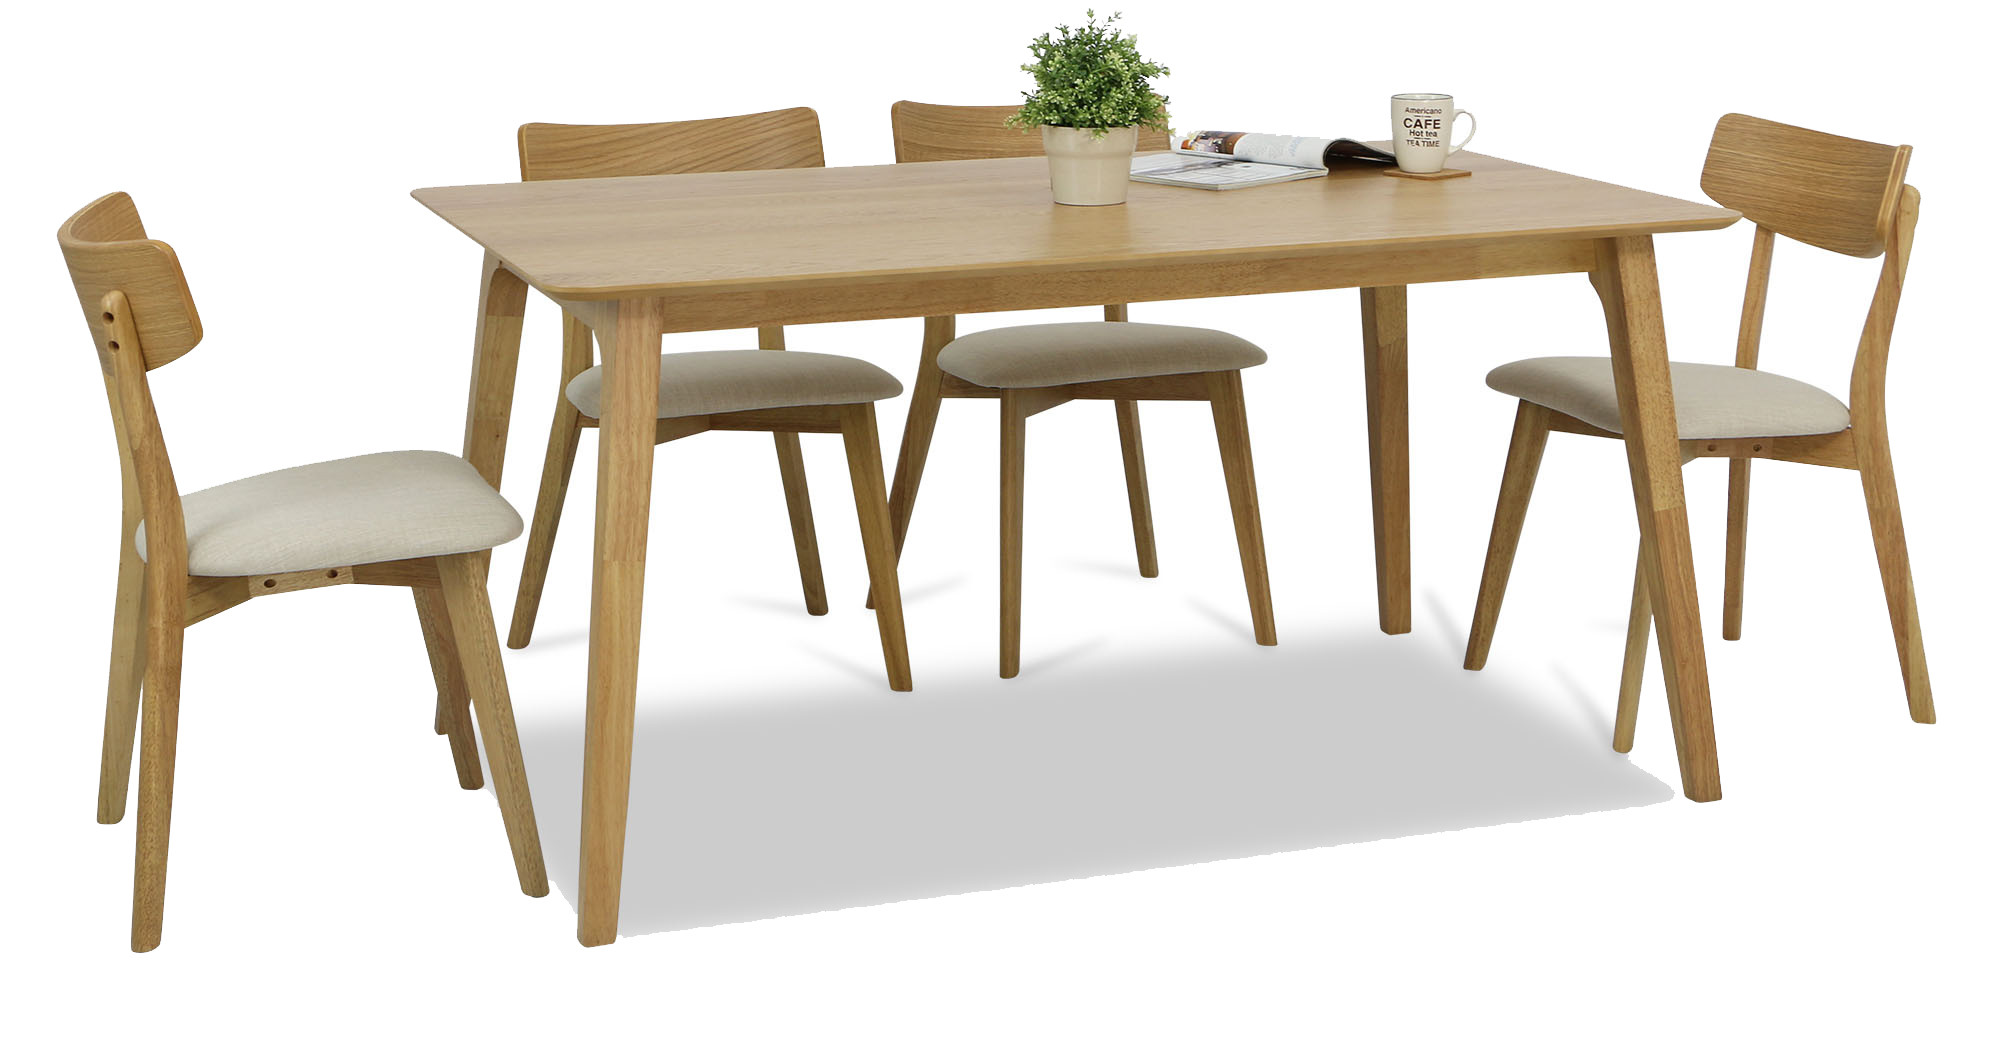 Loto Dining Table Set A 1 4 Furniture Home Decor Fortytwo